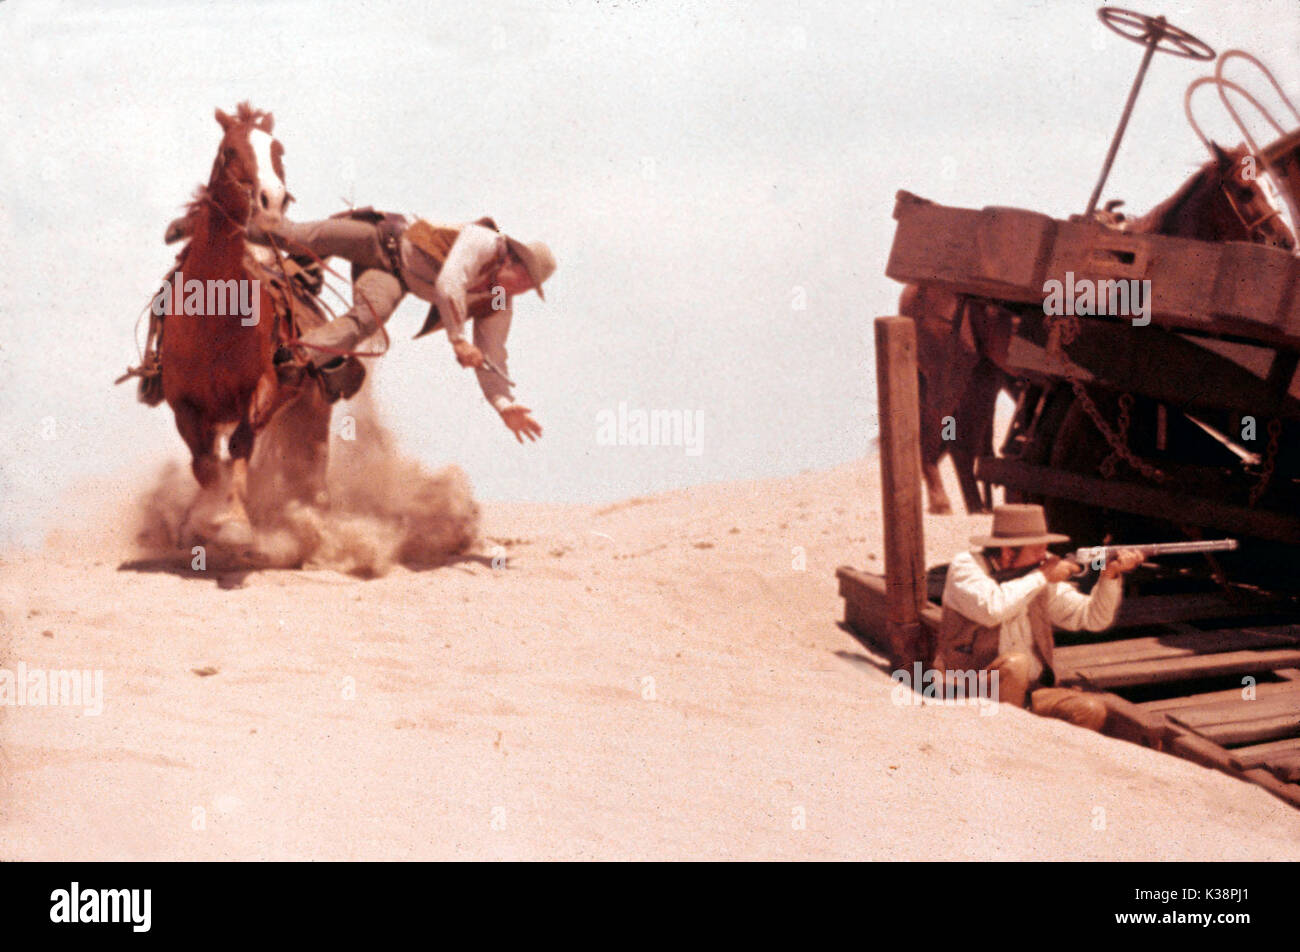 THE TRAIN ROBBERS      Date: 1973 - Stock Image